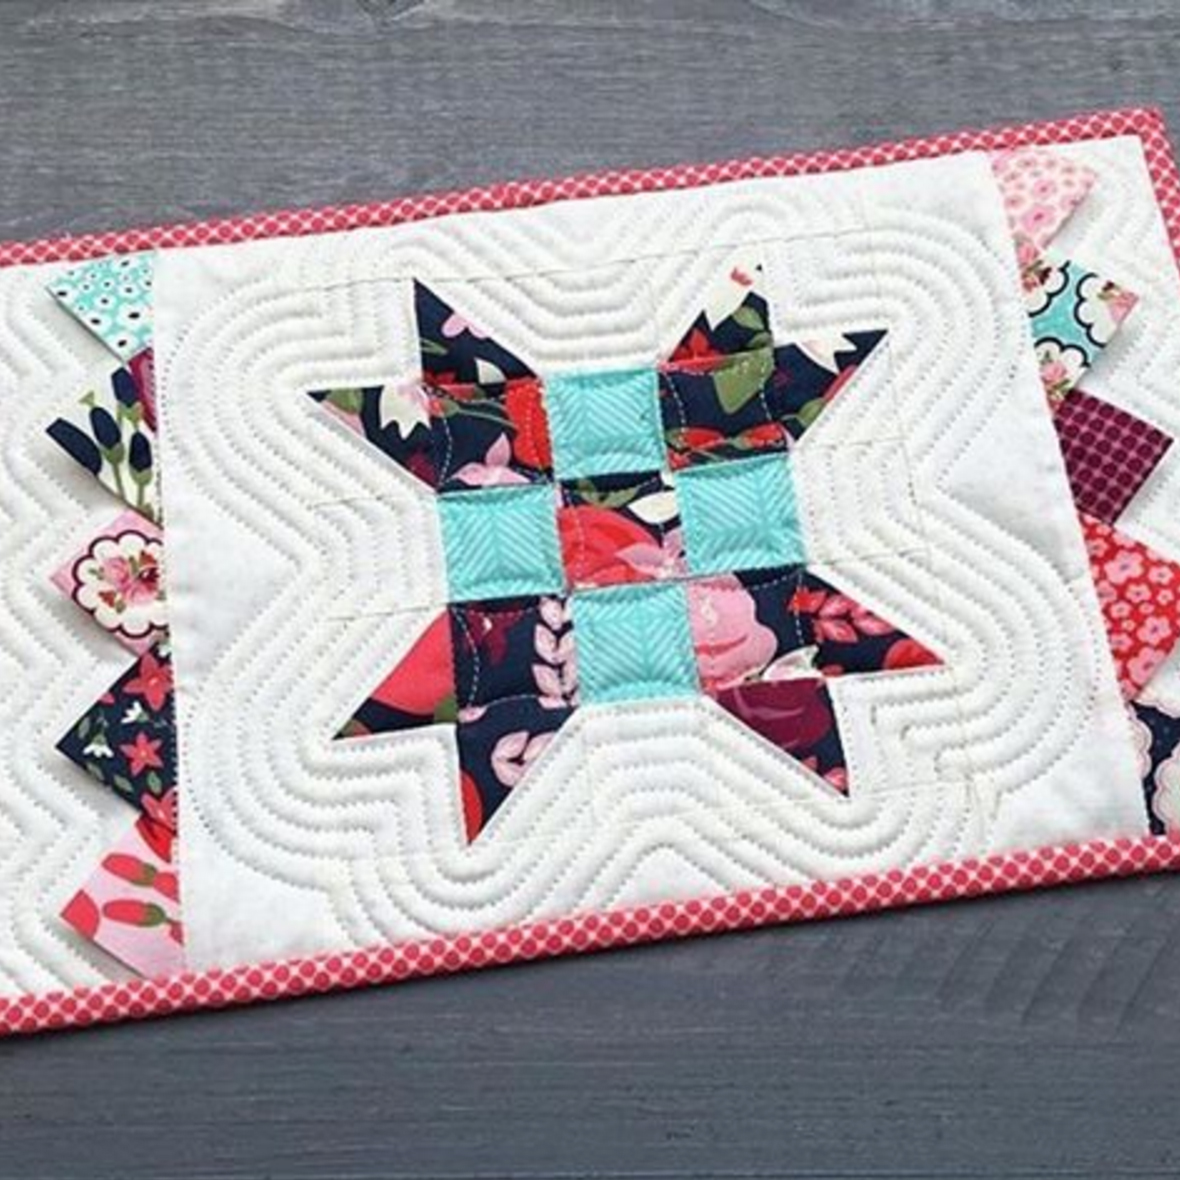 posygarden_stitchingrevival